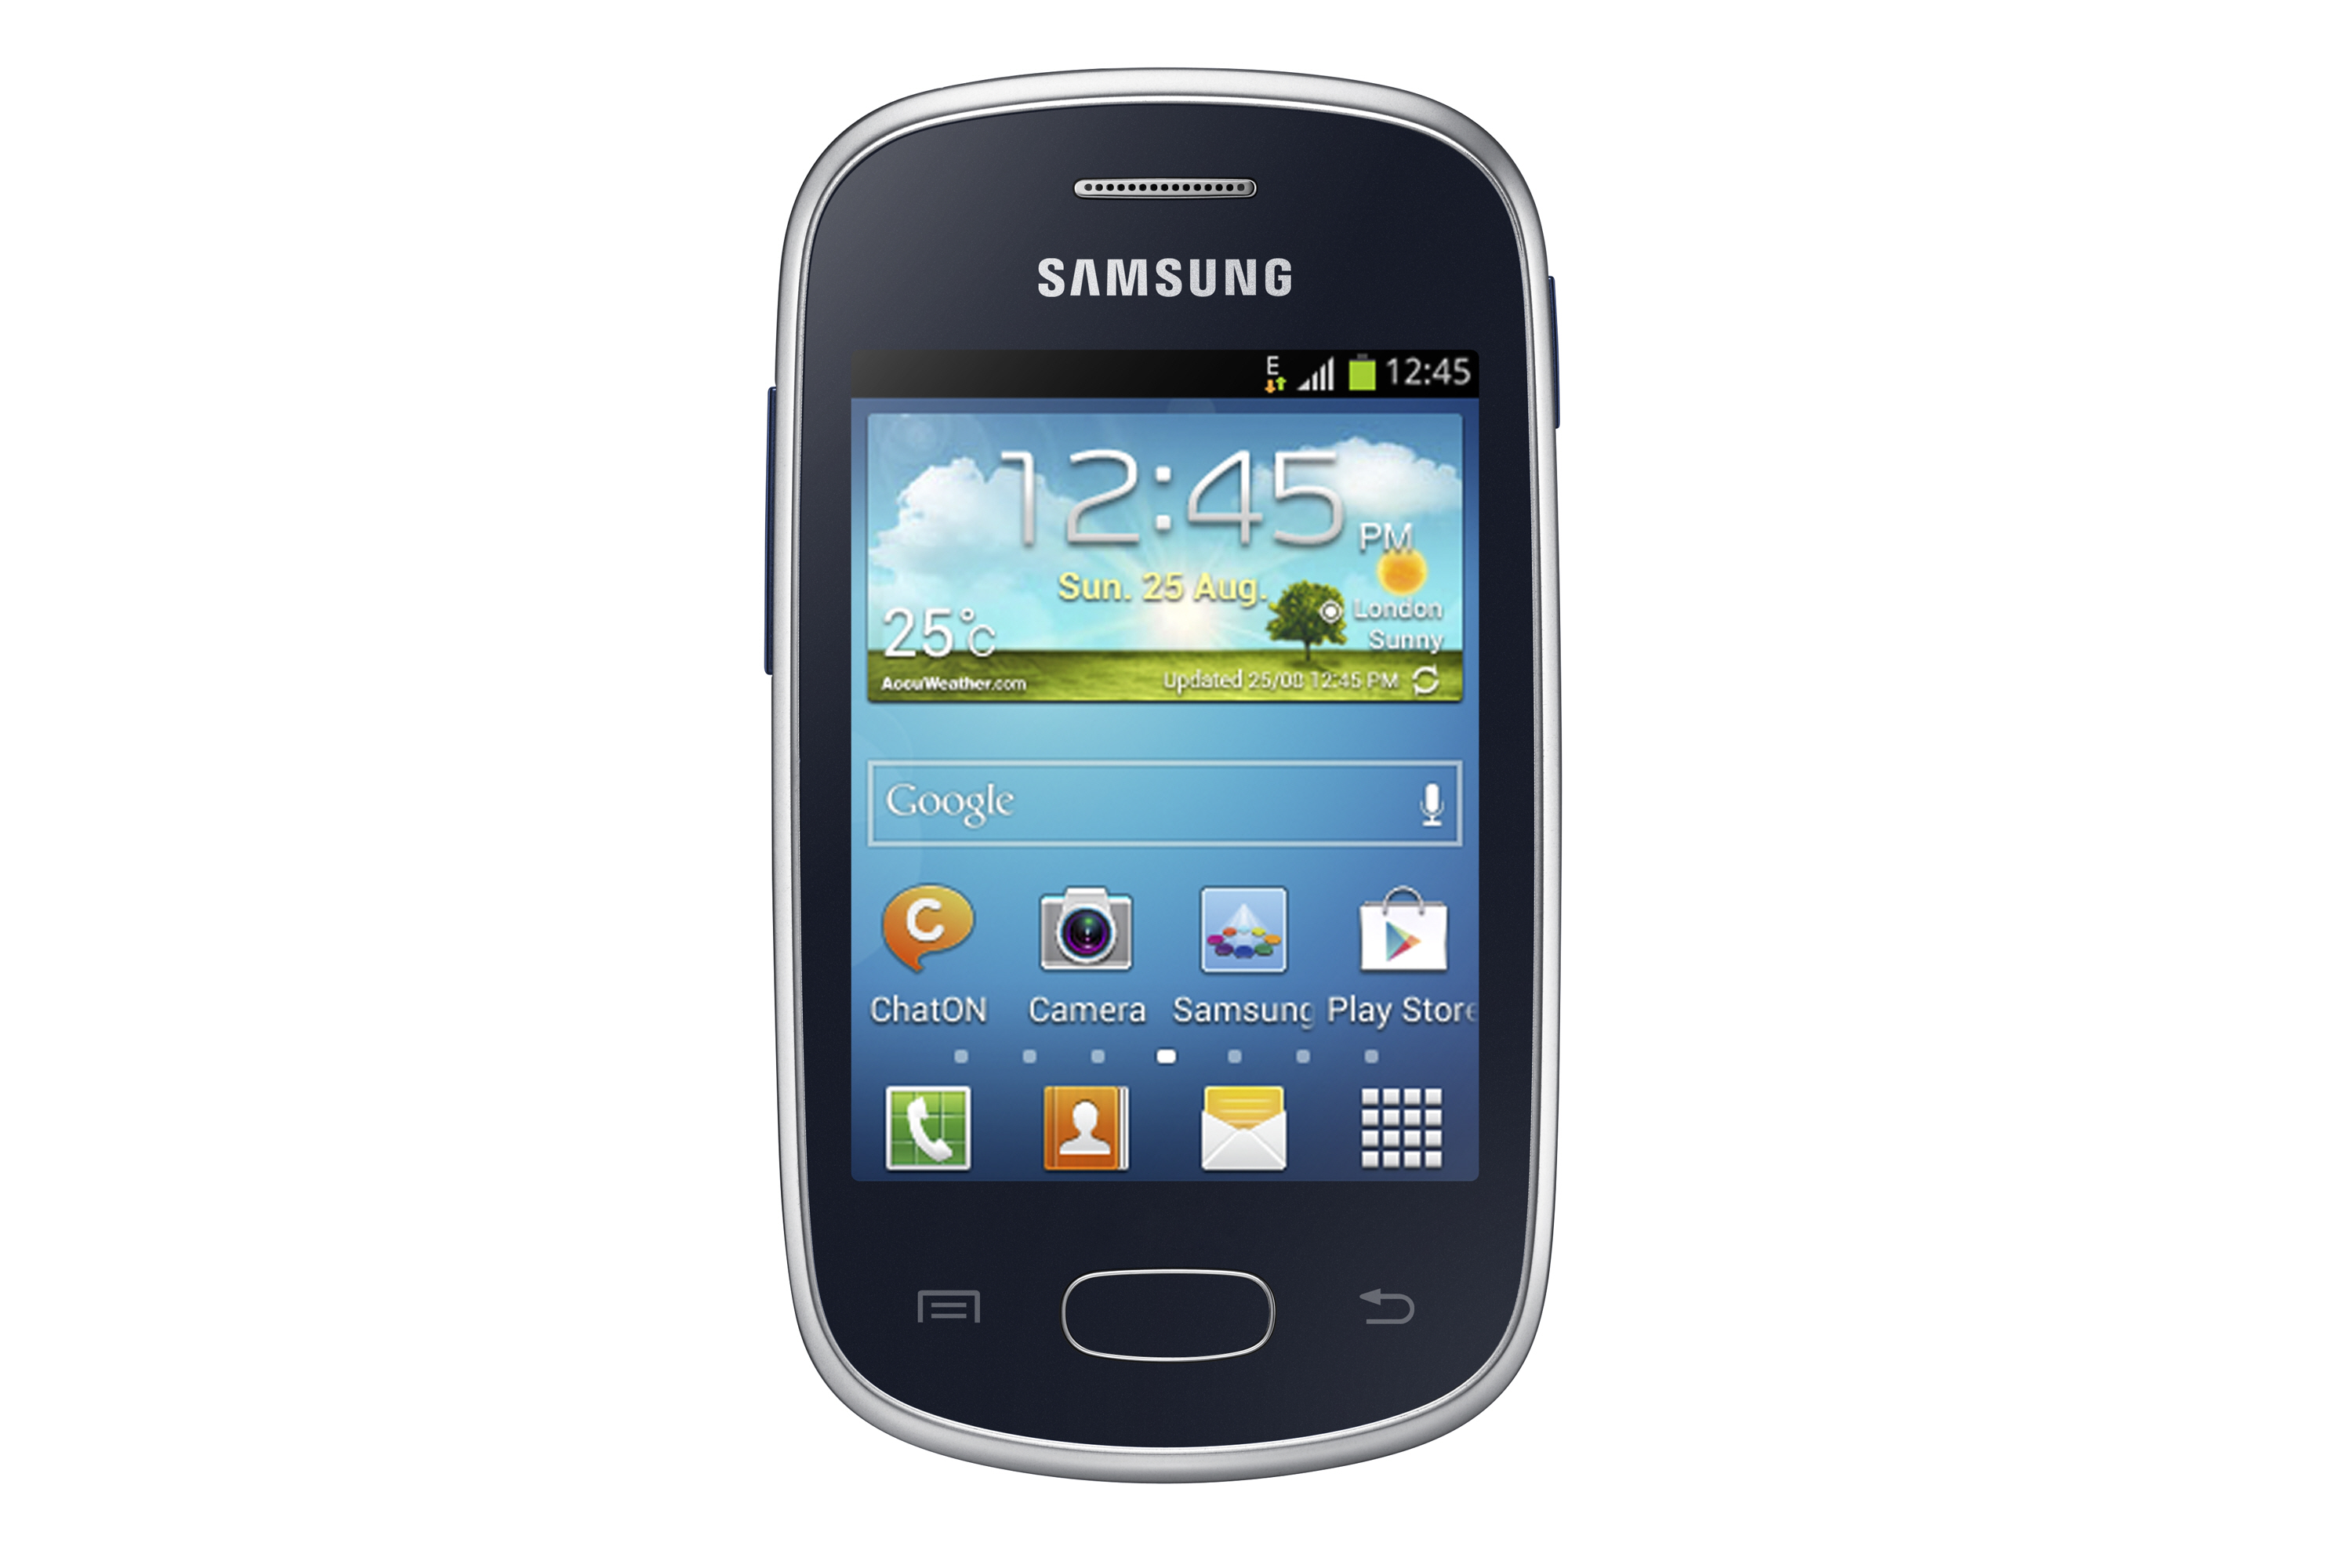 Samsung GT-S5280 Image